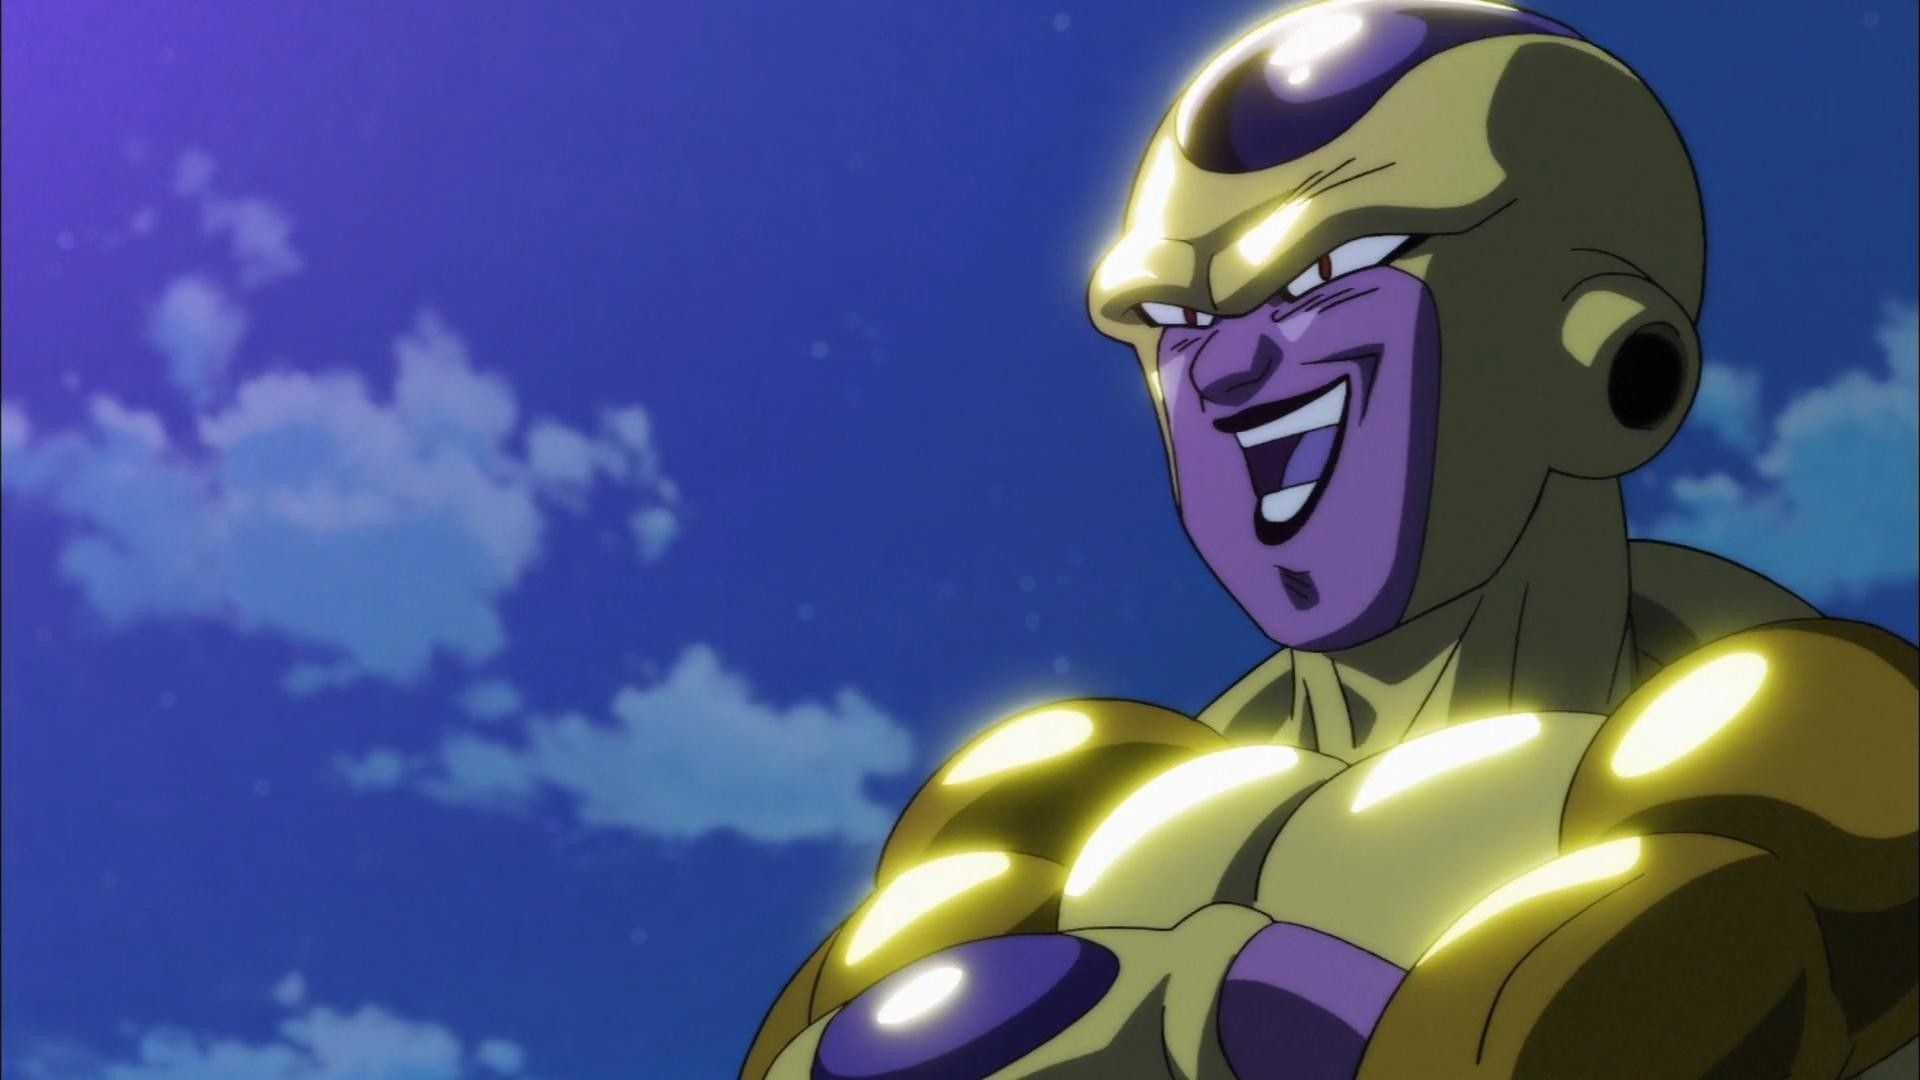 Res: 1920x1080, Golden Frieza Wallpapers (65+ images)